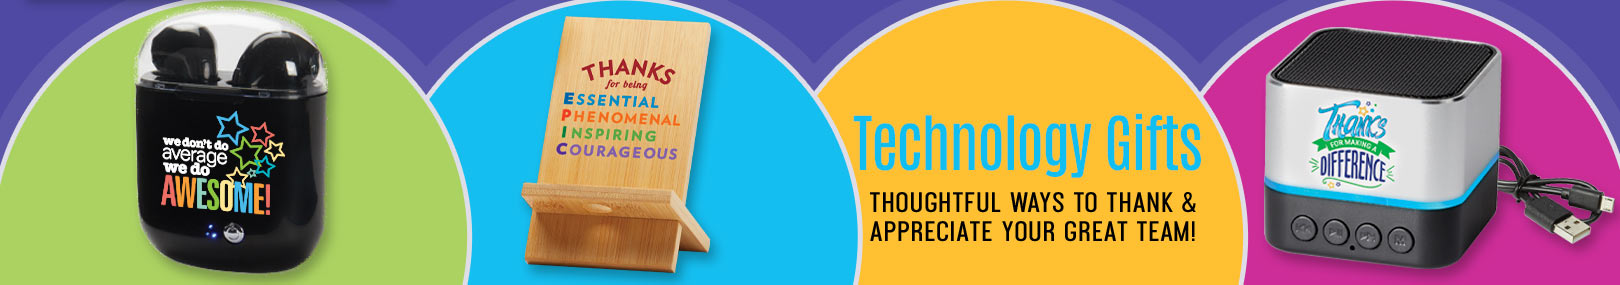 Employee appreciation technology gifts from Positive Promotions